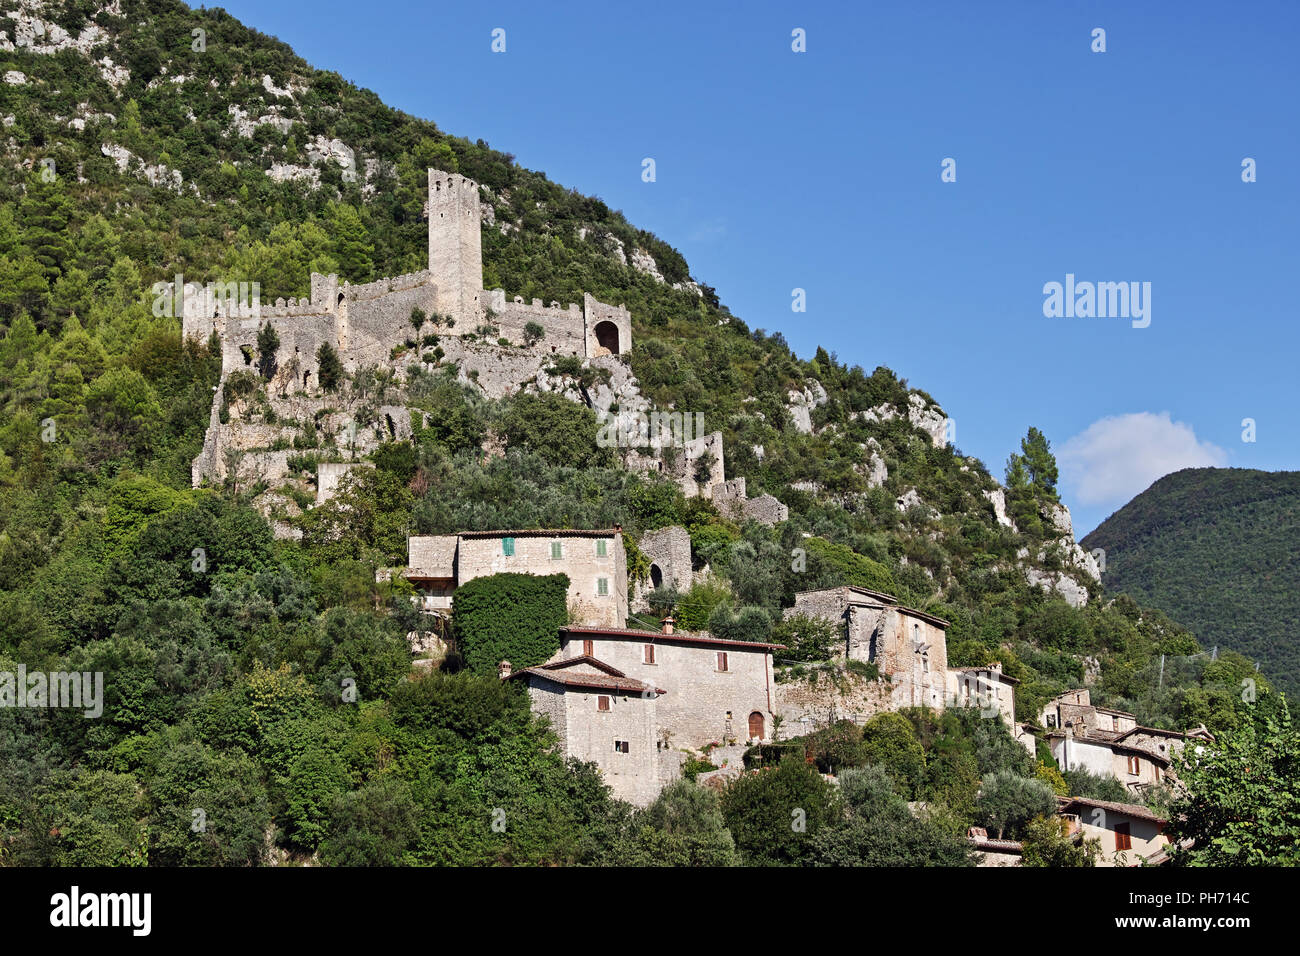 the ruins of the Precetto fortress, one of two fortresses of Ferentillo, Valnerina, Terni, Umbria, Italy - Stock Image